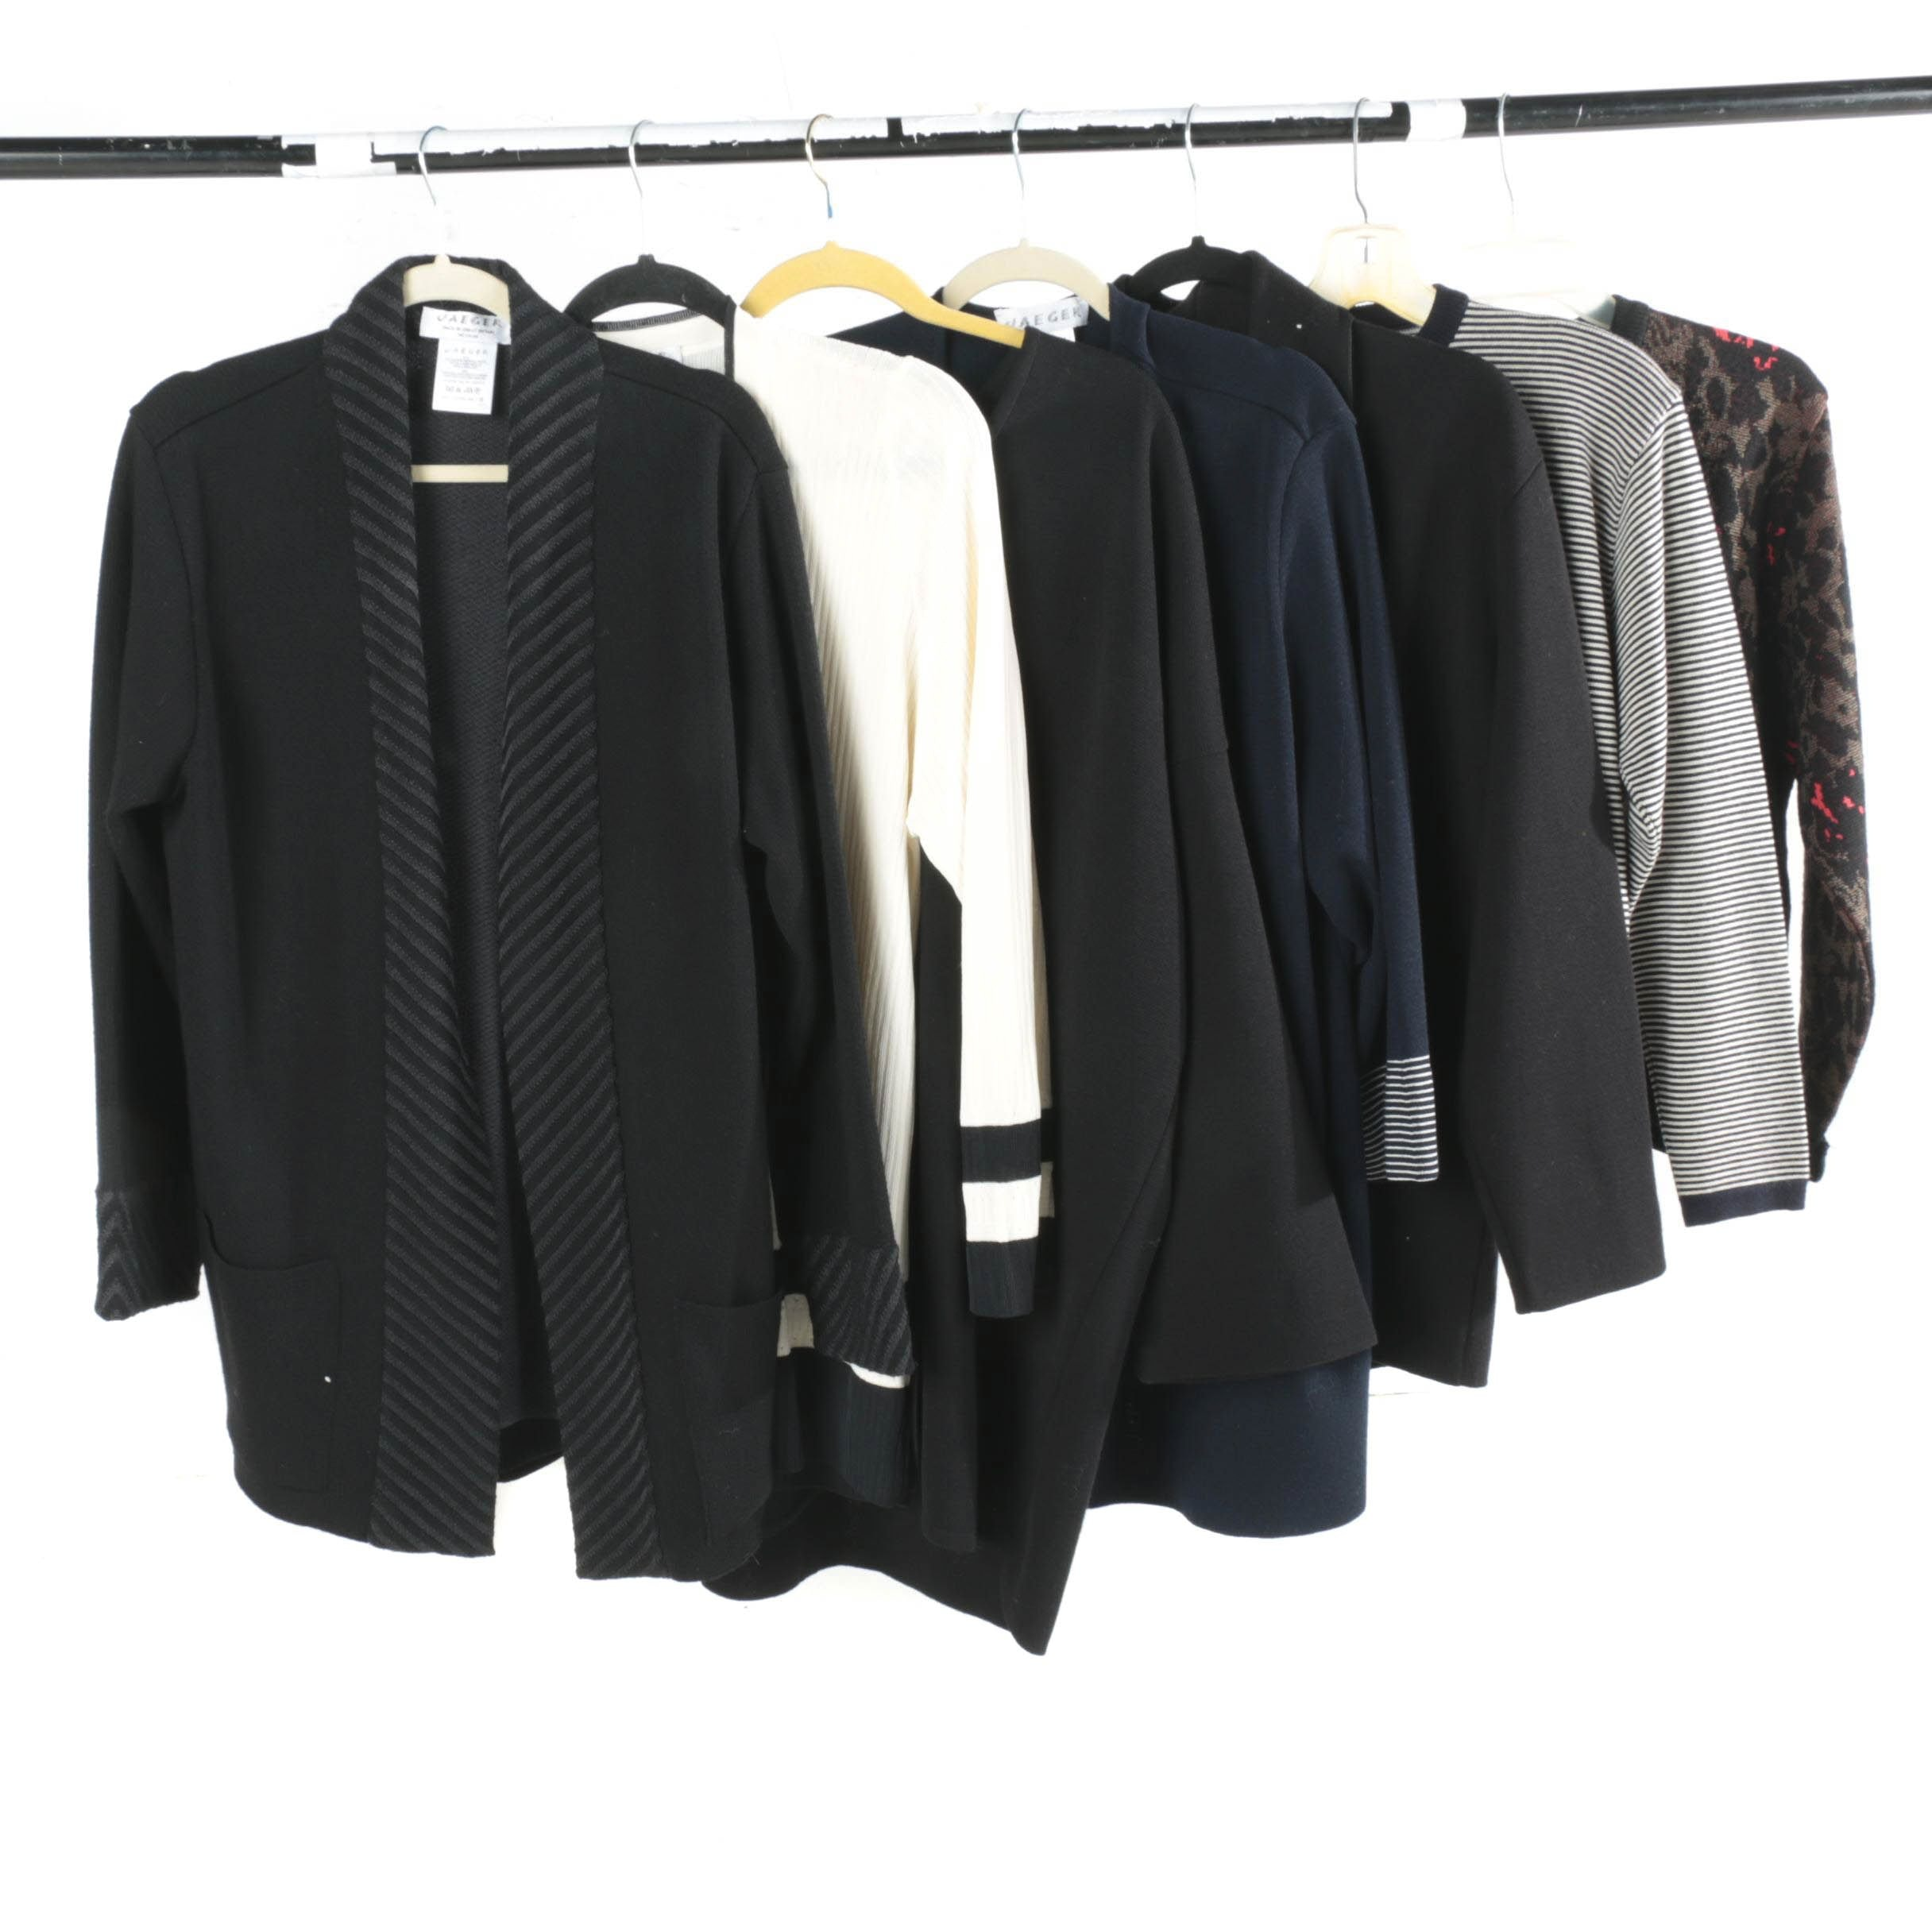 Women's Cardigans by Jaeger